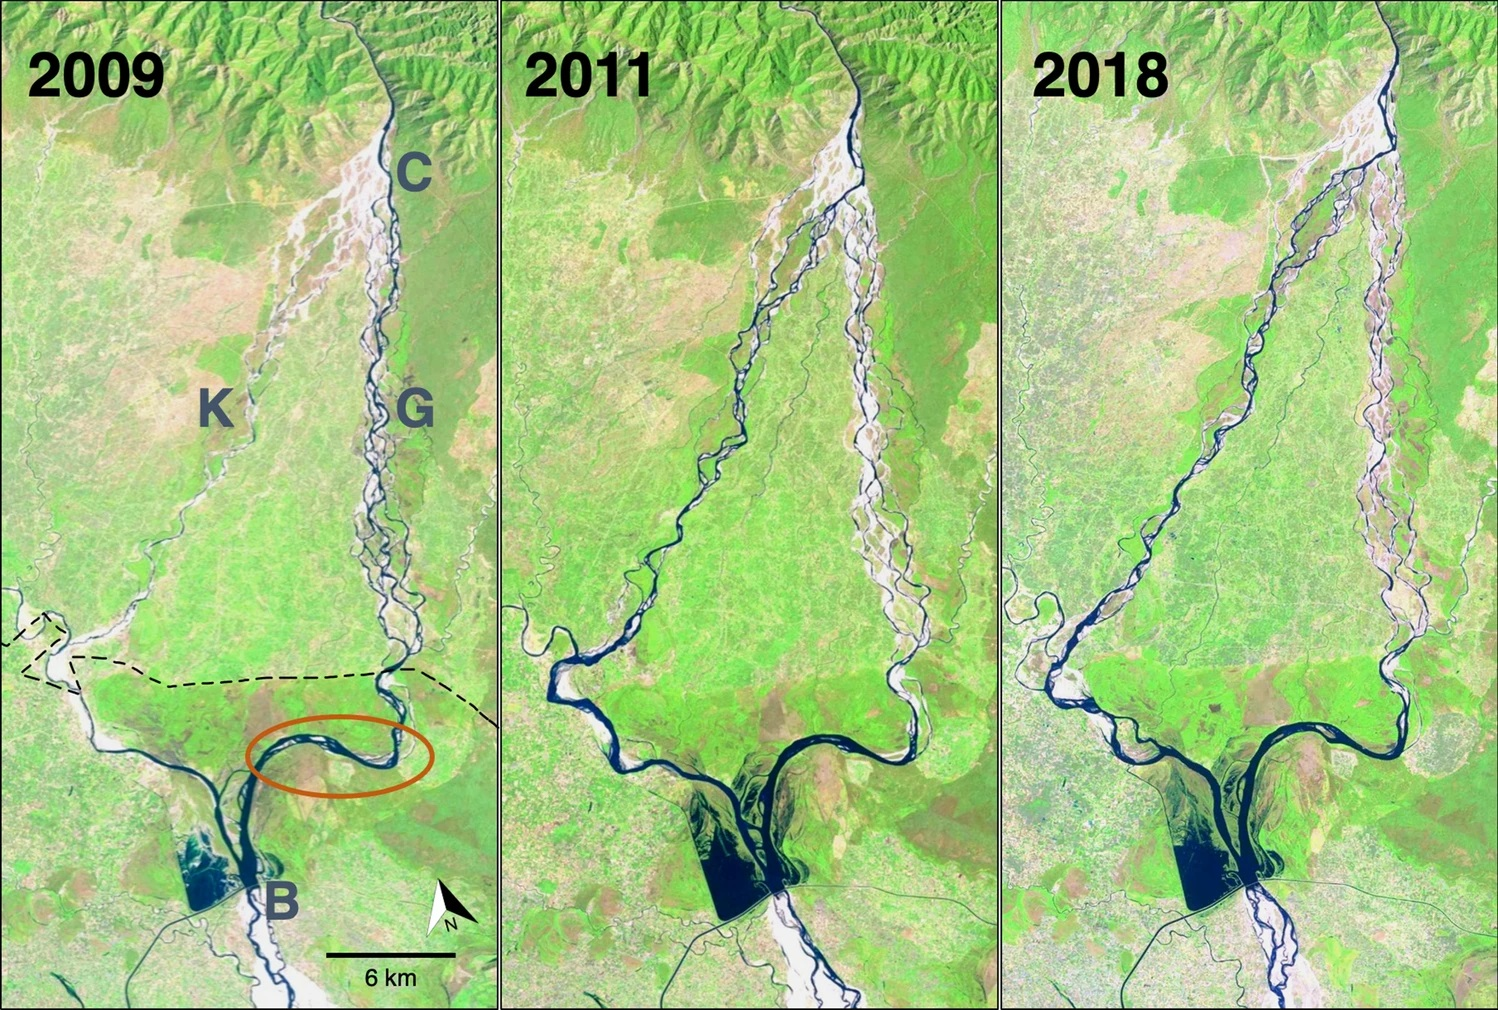 Satellite images before (2009; left panel) and after (2011 and 2018; middle and right panels) a flood event in 2010 in Karnali river channels, Nepal. The flood resulted in a mainstream channel shift from east (right side,=G, Geruwa channel in Nepal) to west (left side,=K, Karnali channel in Nepal). Map from Vashistha et al. 2021.